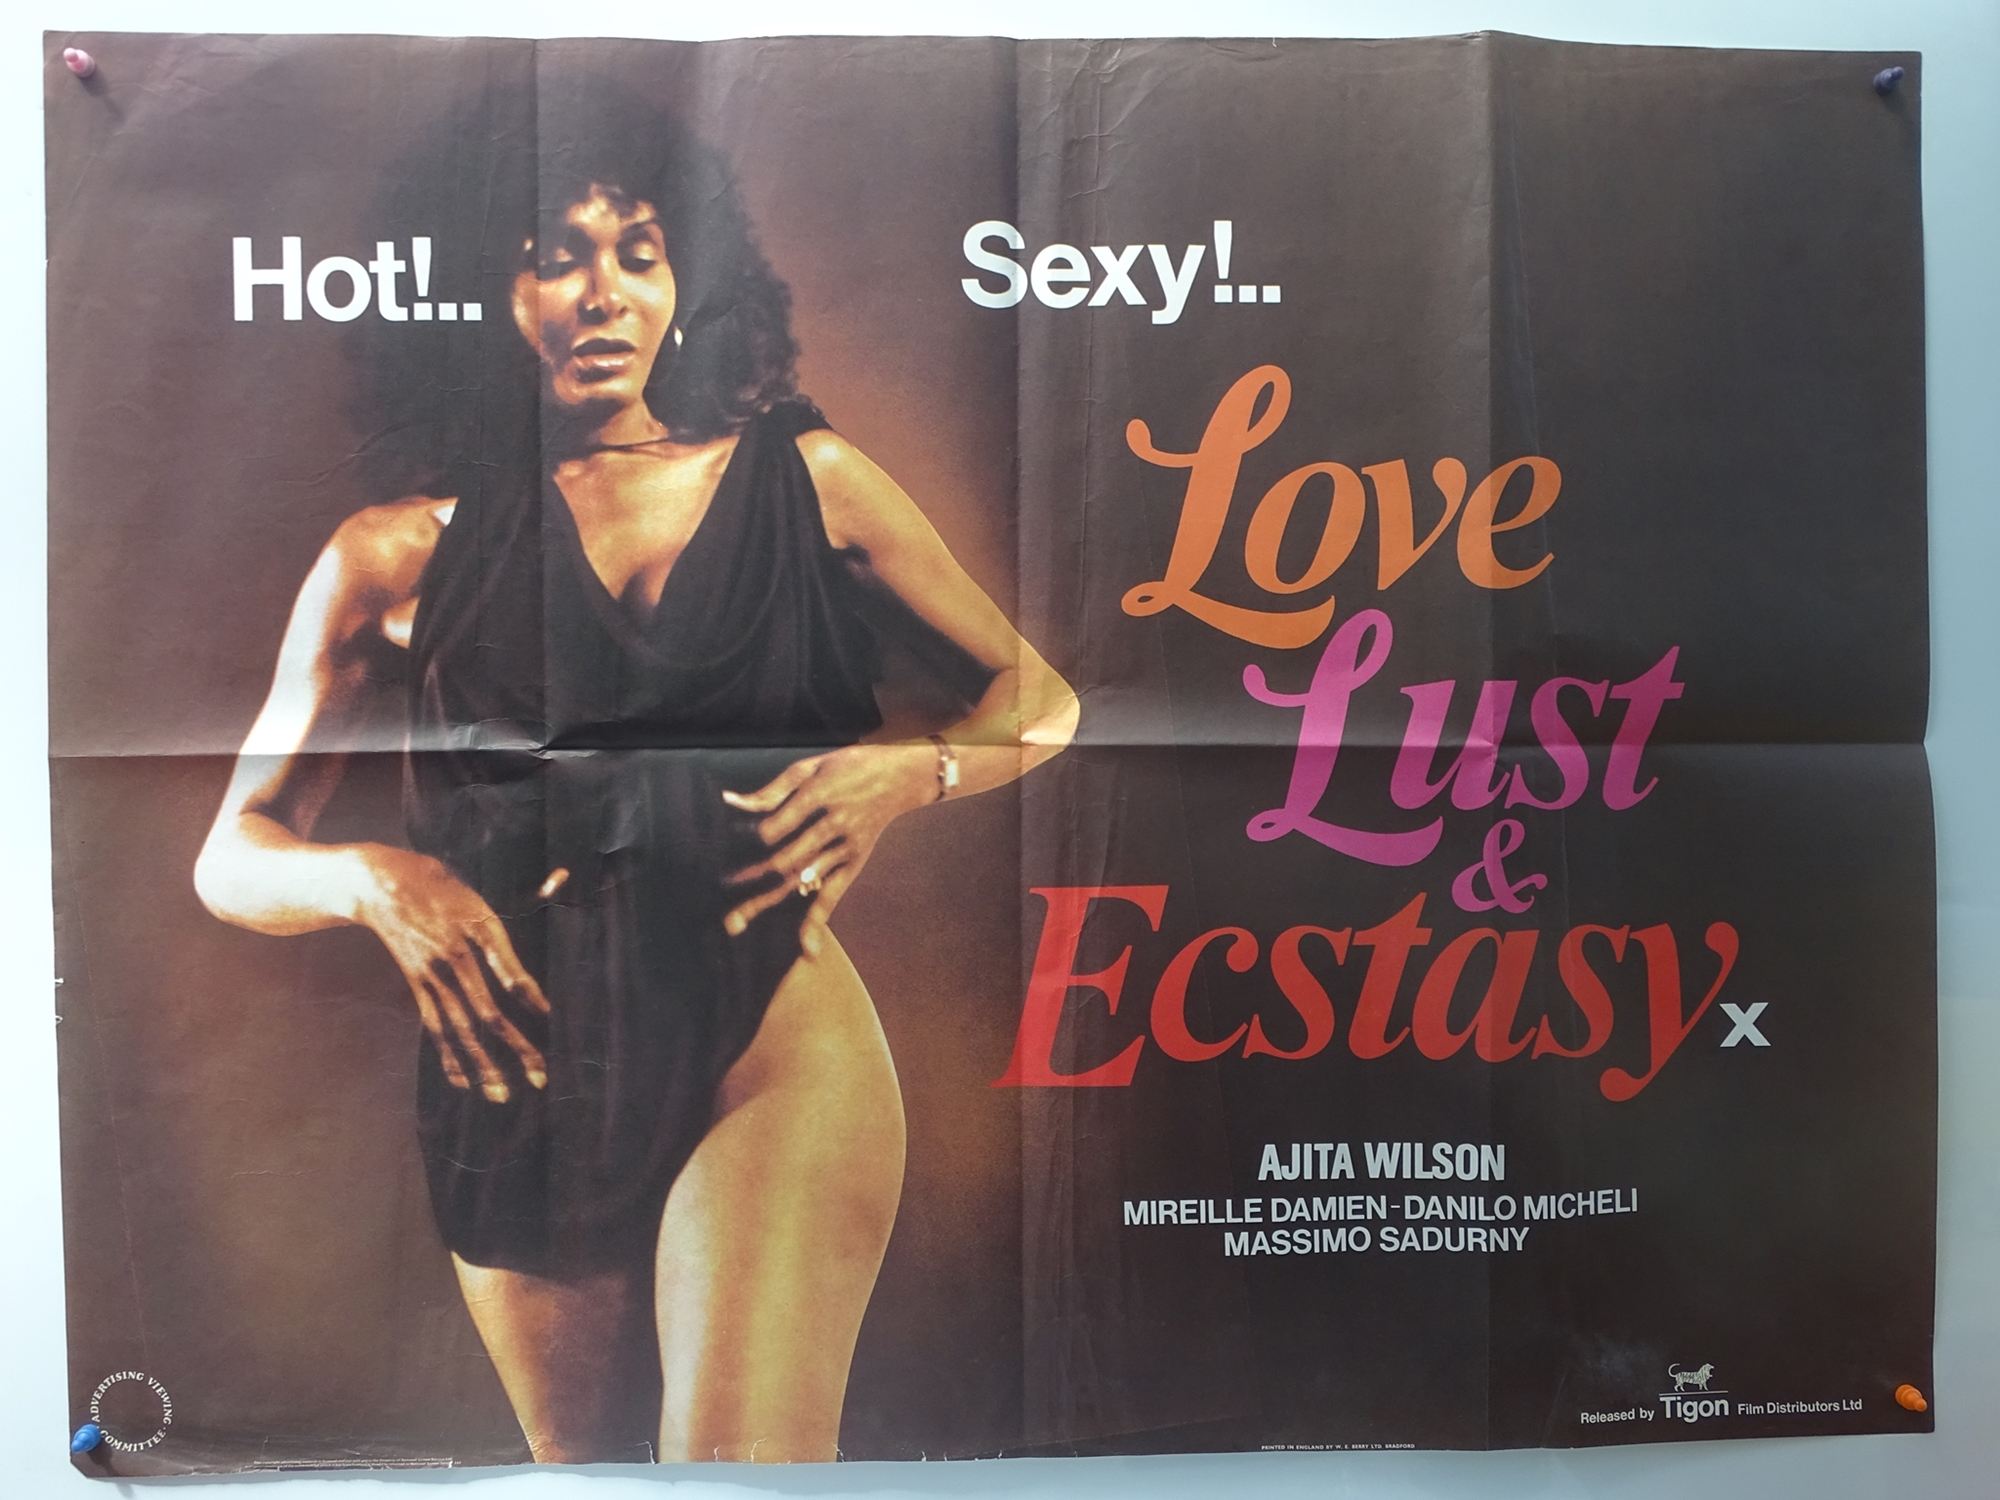 """LOVE, LUST AND ECSTASY (1981) - UK QUAD FILM POSTER - 30"""" x 40"""" (76 x 101.5 cm) - Folded (as issued)"""